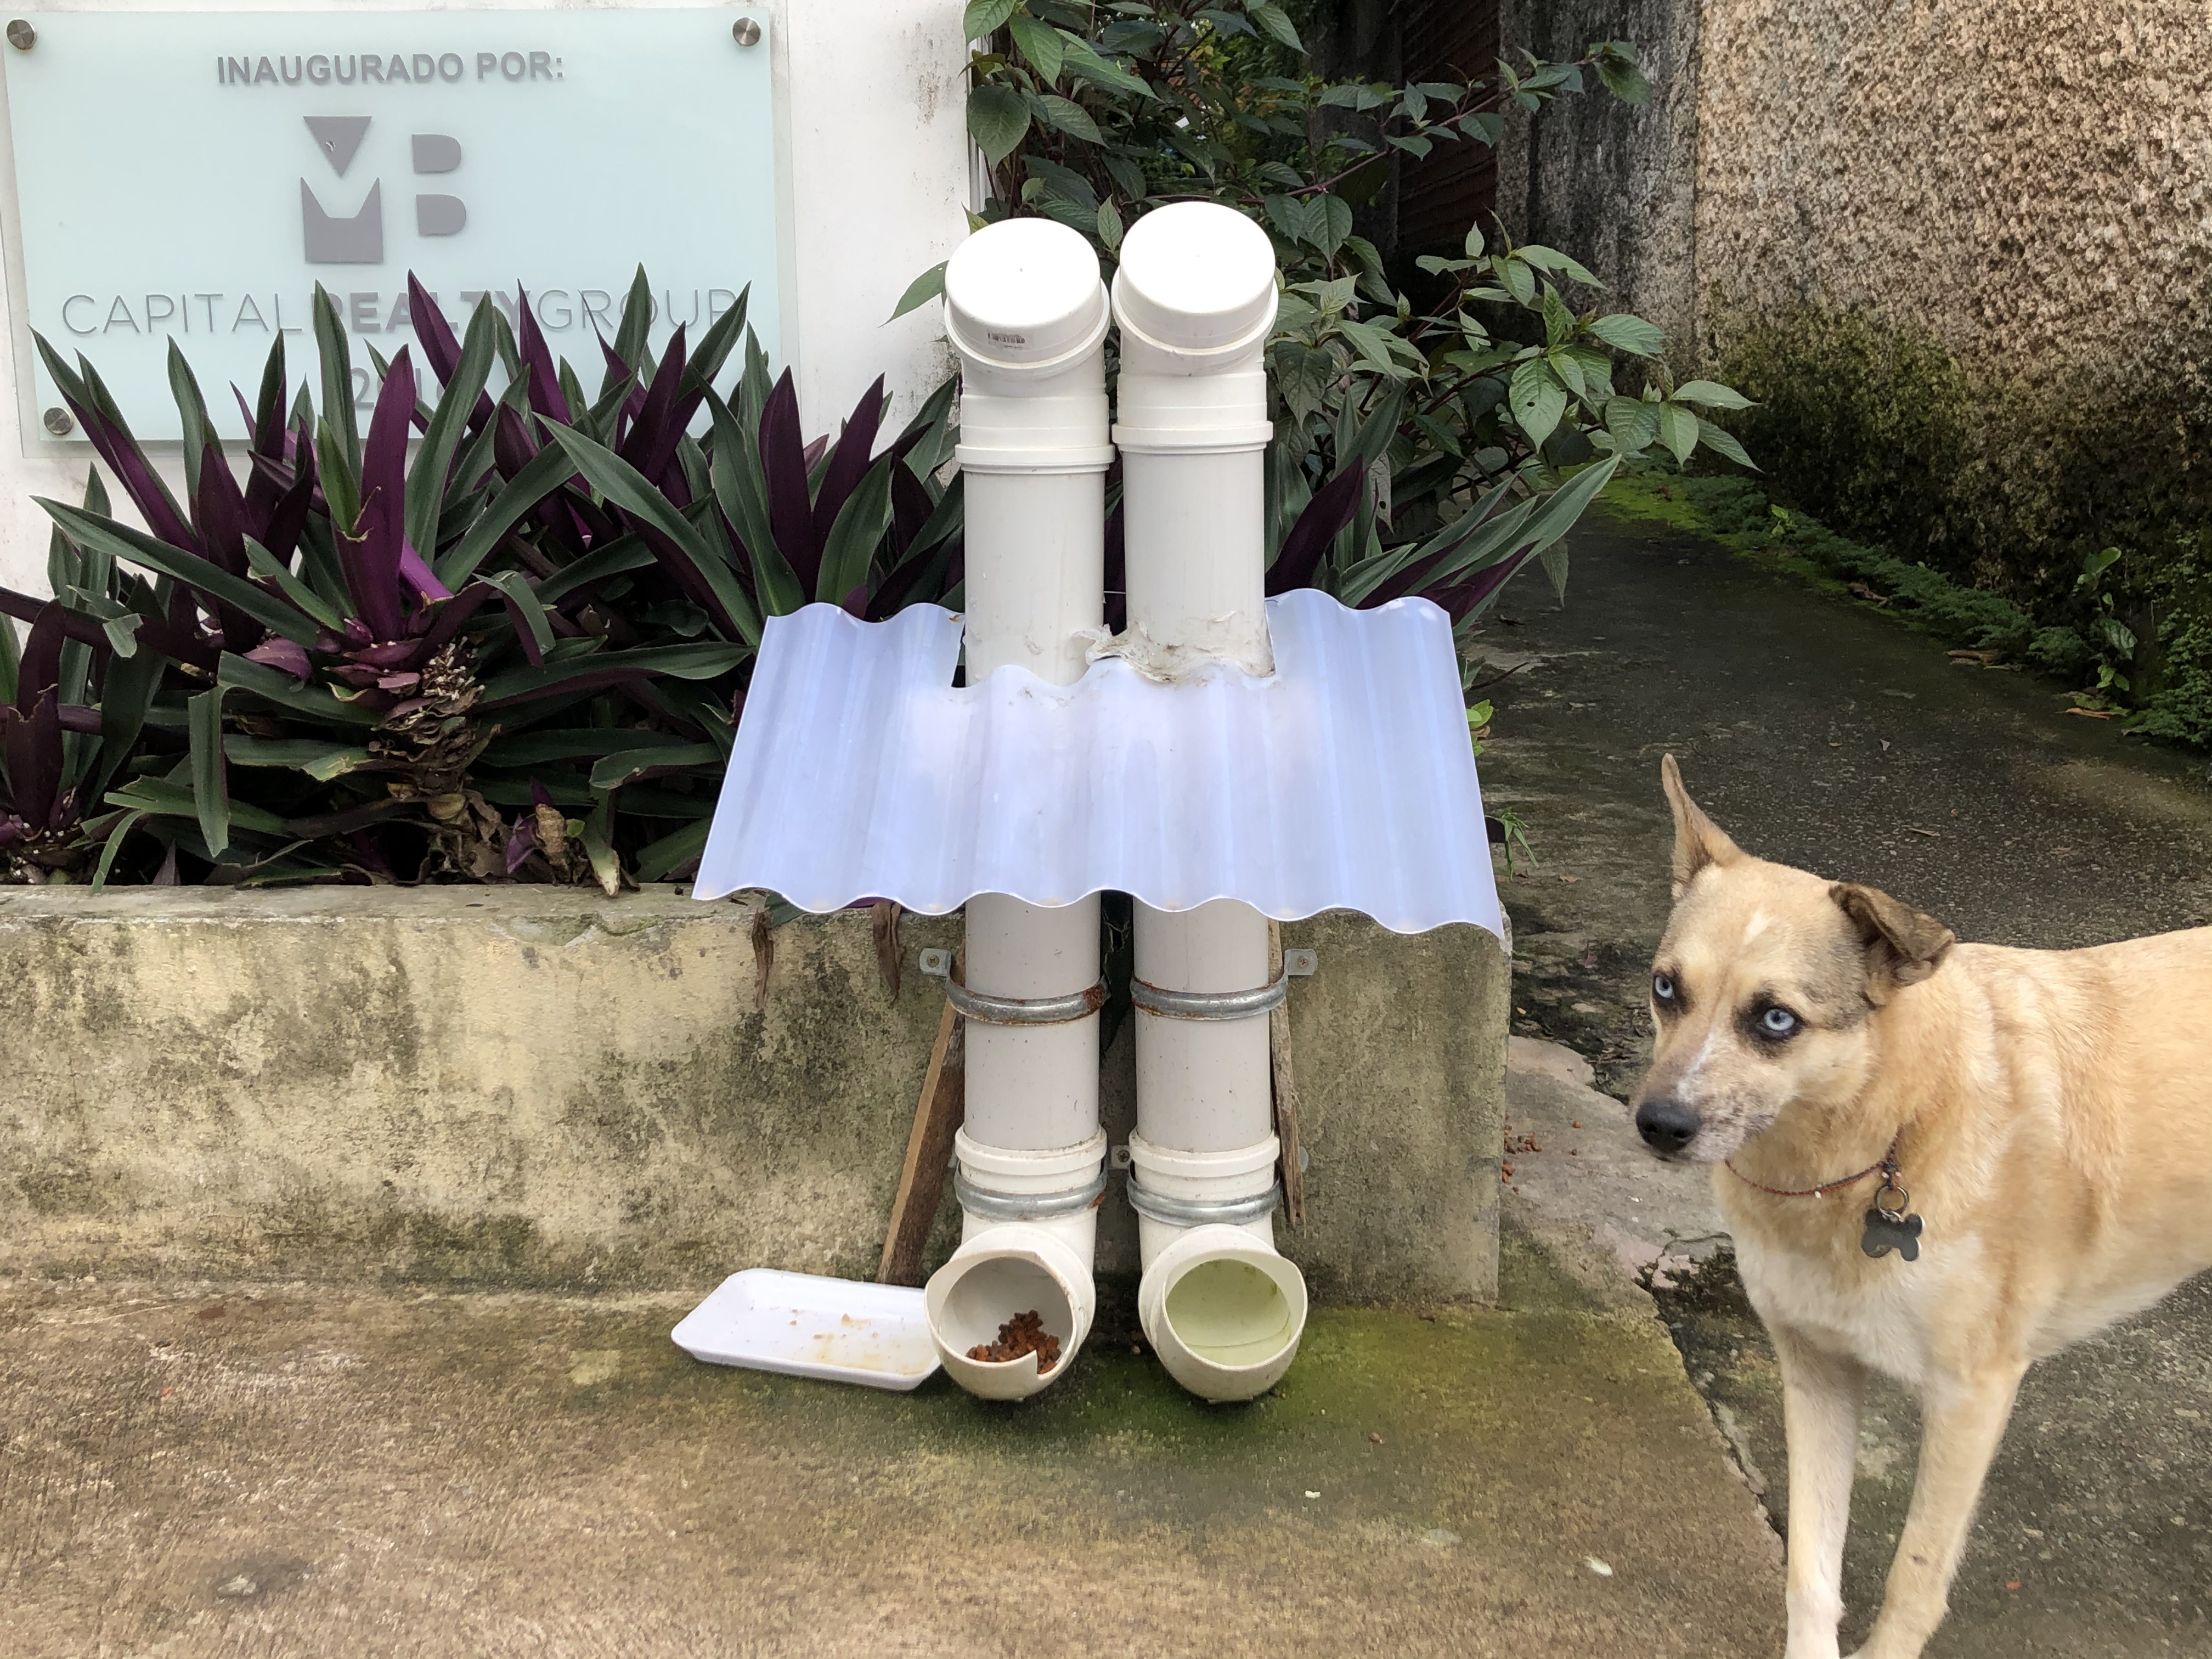 city street dog feeder station.jpeg